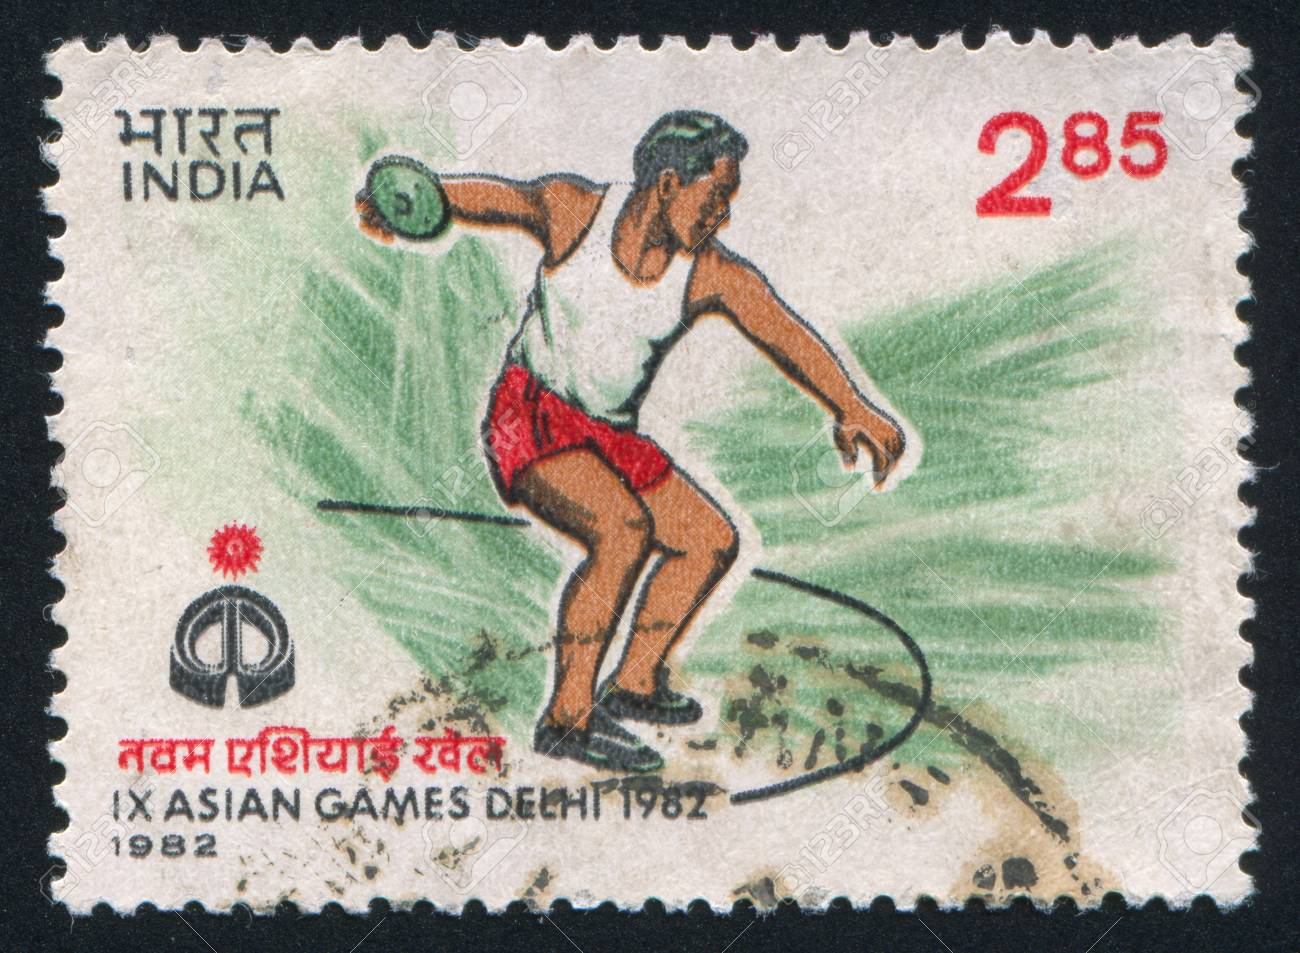 INDIA - CIRCA 1982: stamp printed by India, shows discus throwing, circa 1982 Stock Photo - 15740838